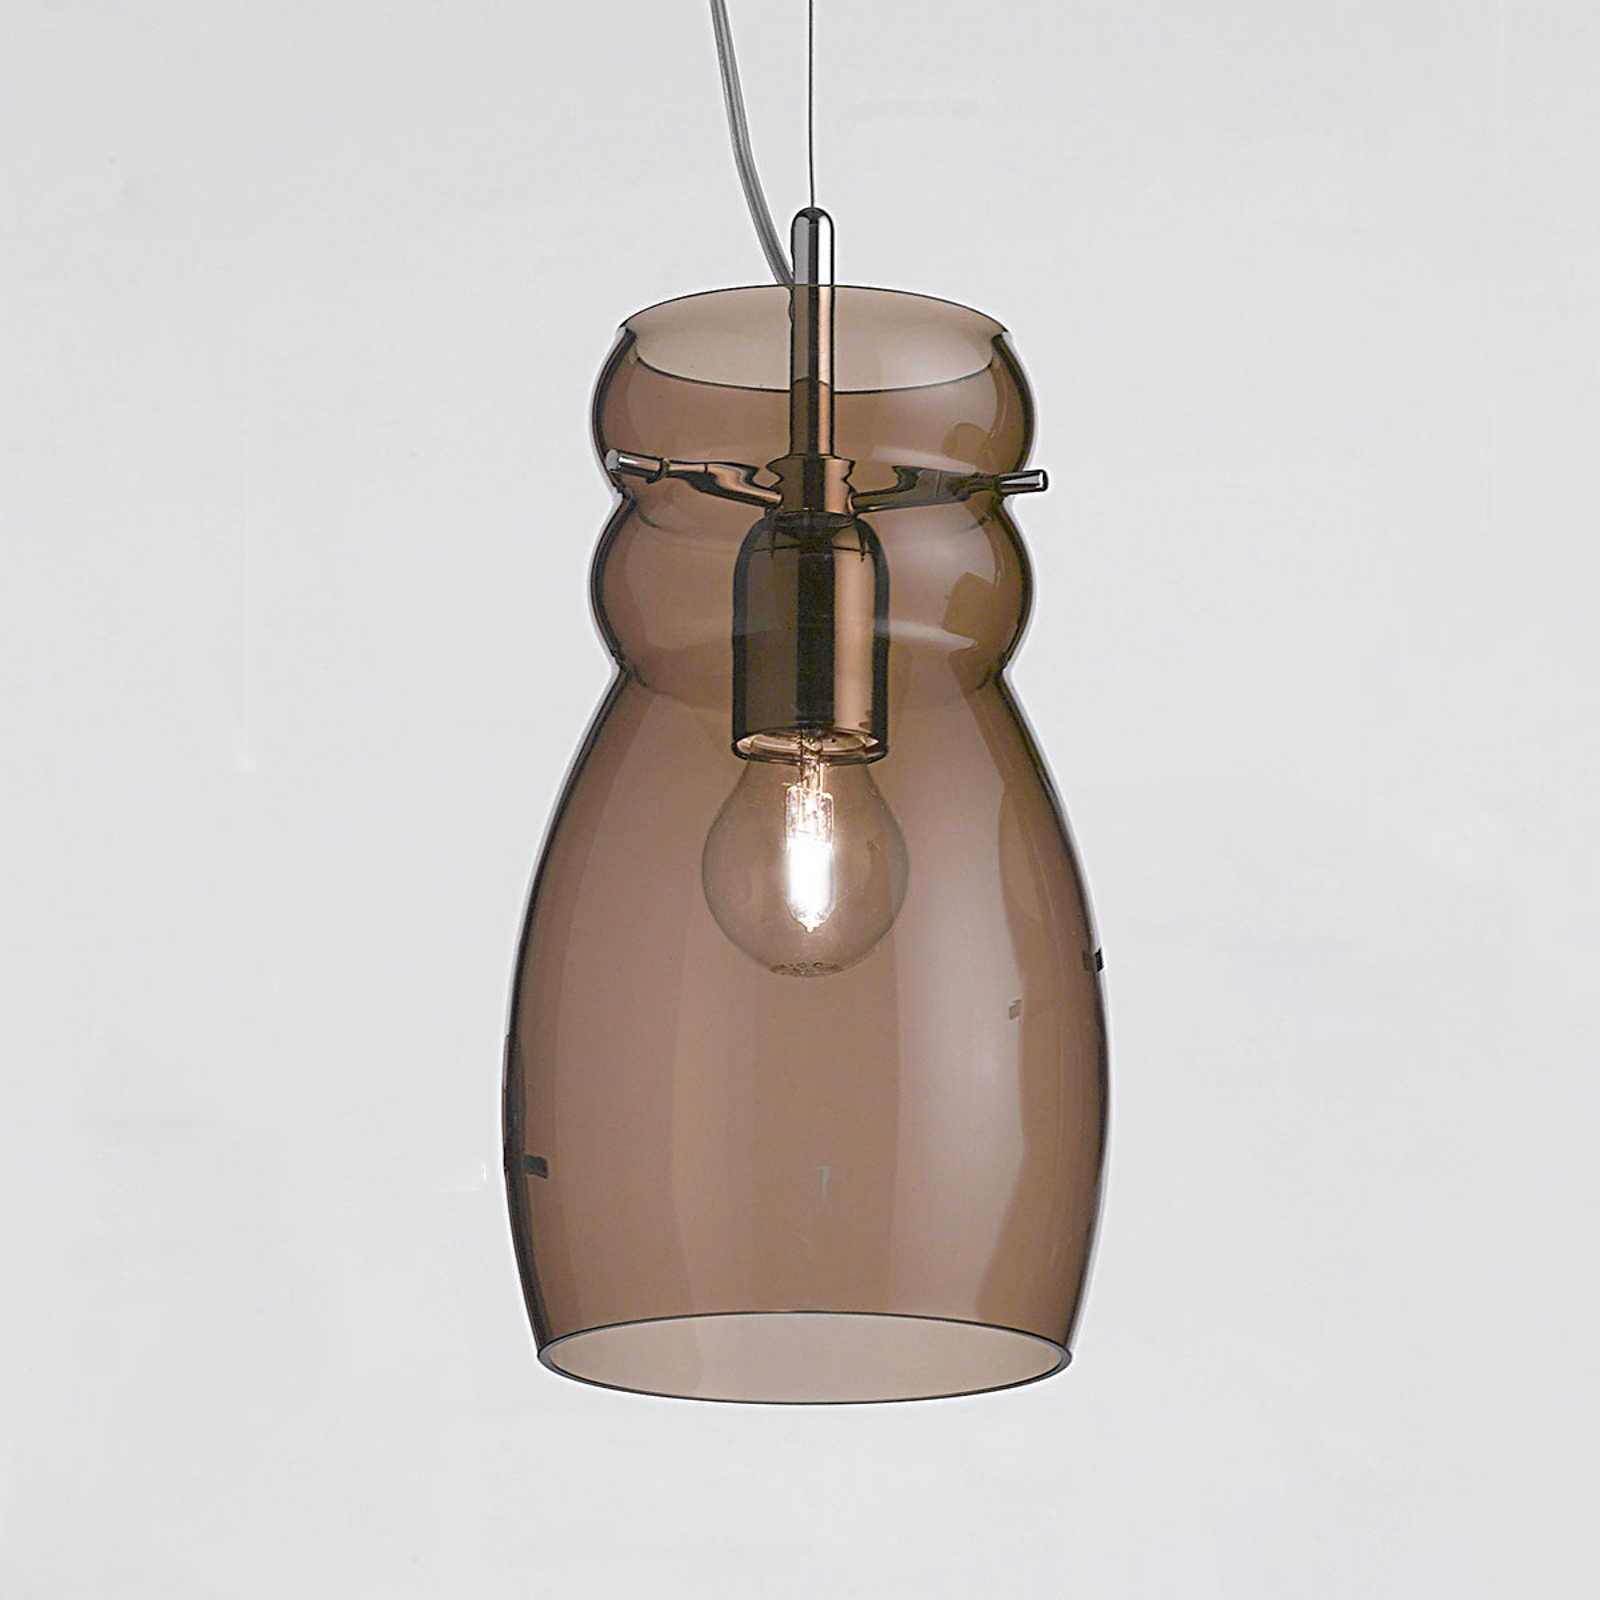 Suspension Giove en verre 16 cm brune